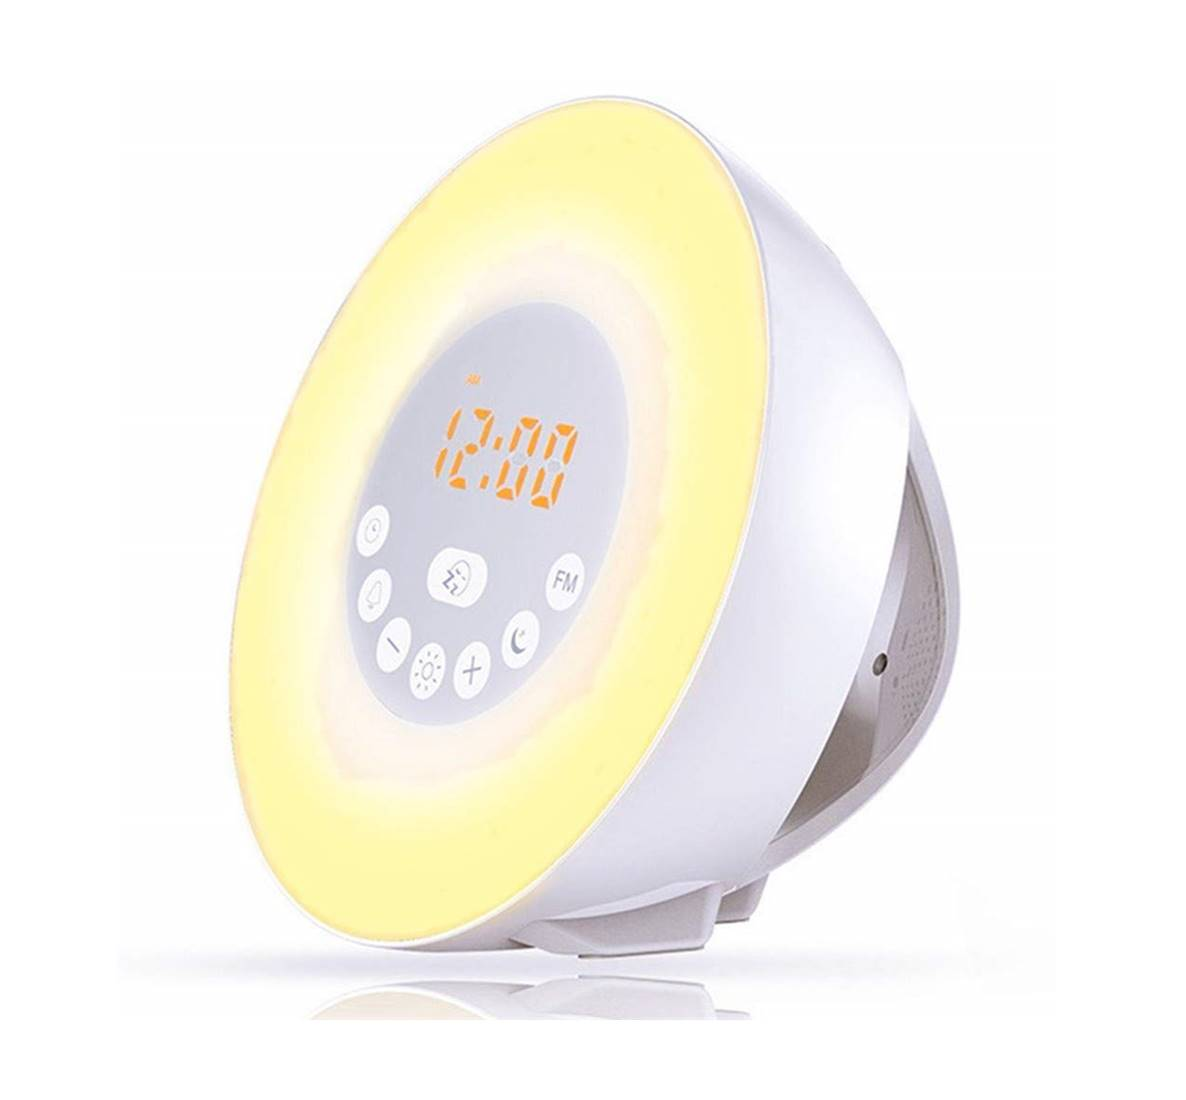 Vicvol Wake Up Loud Alarm Clock